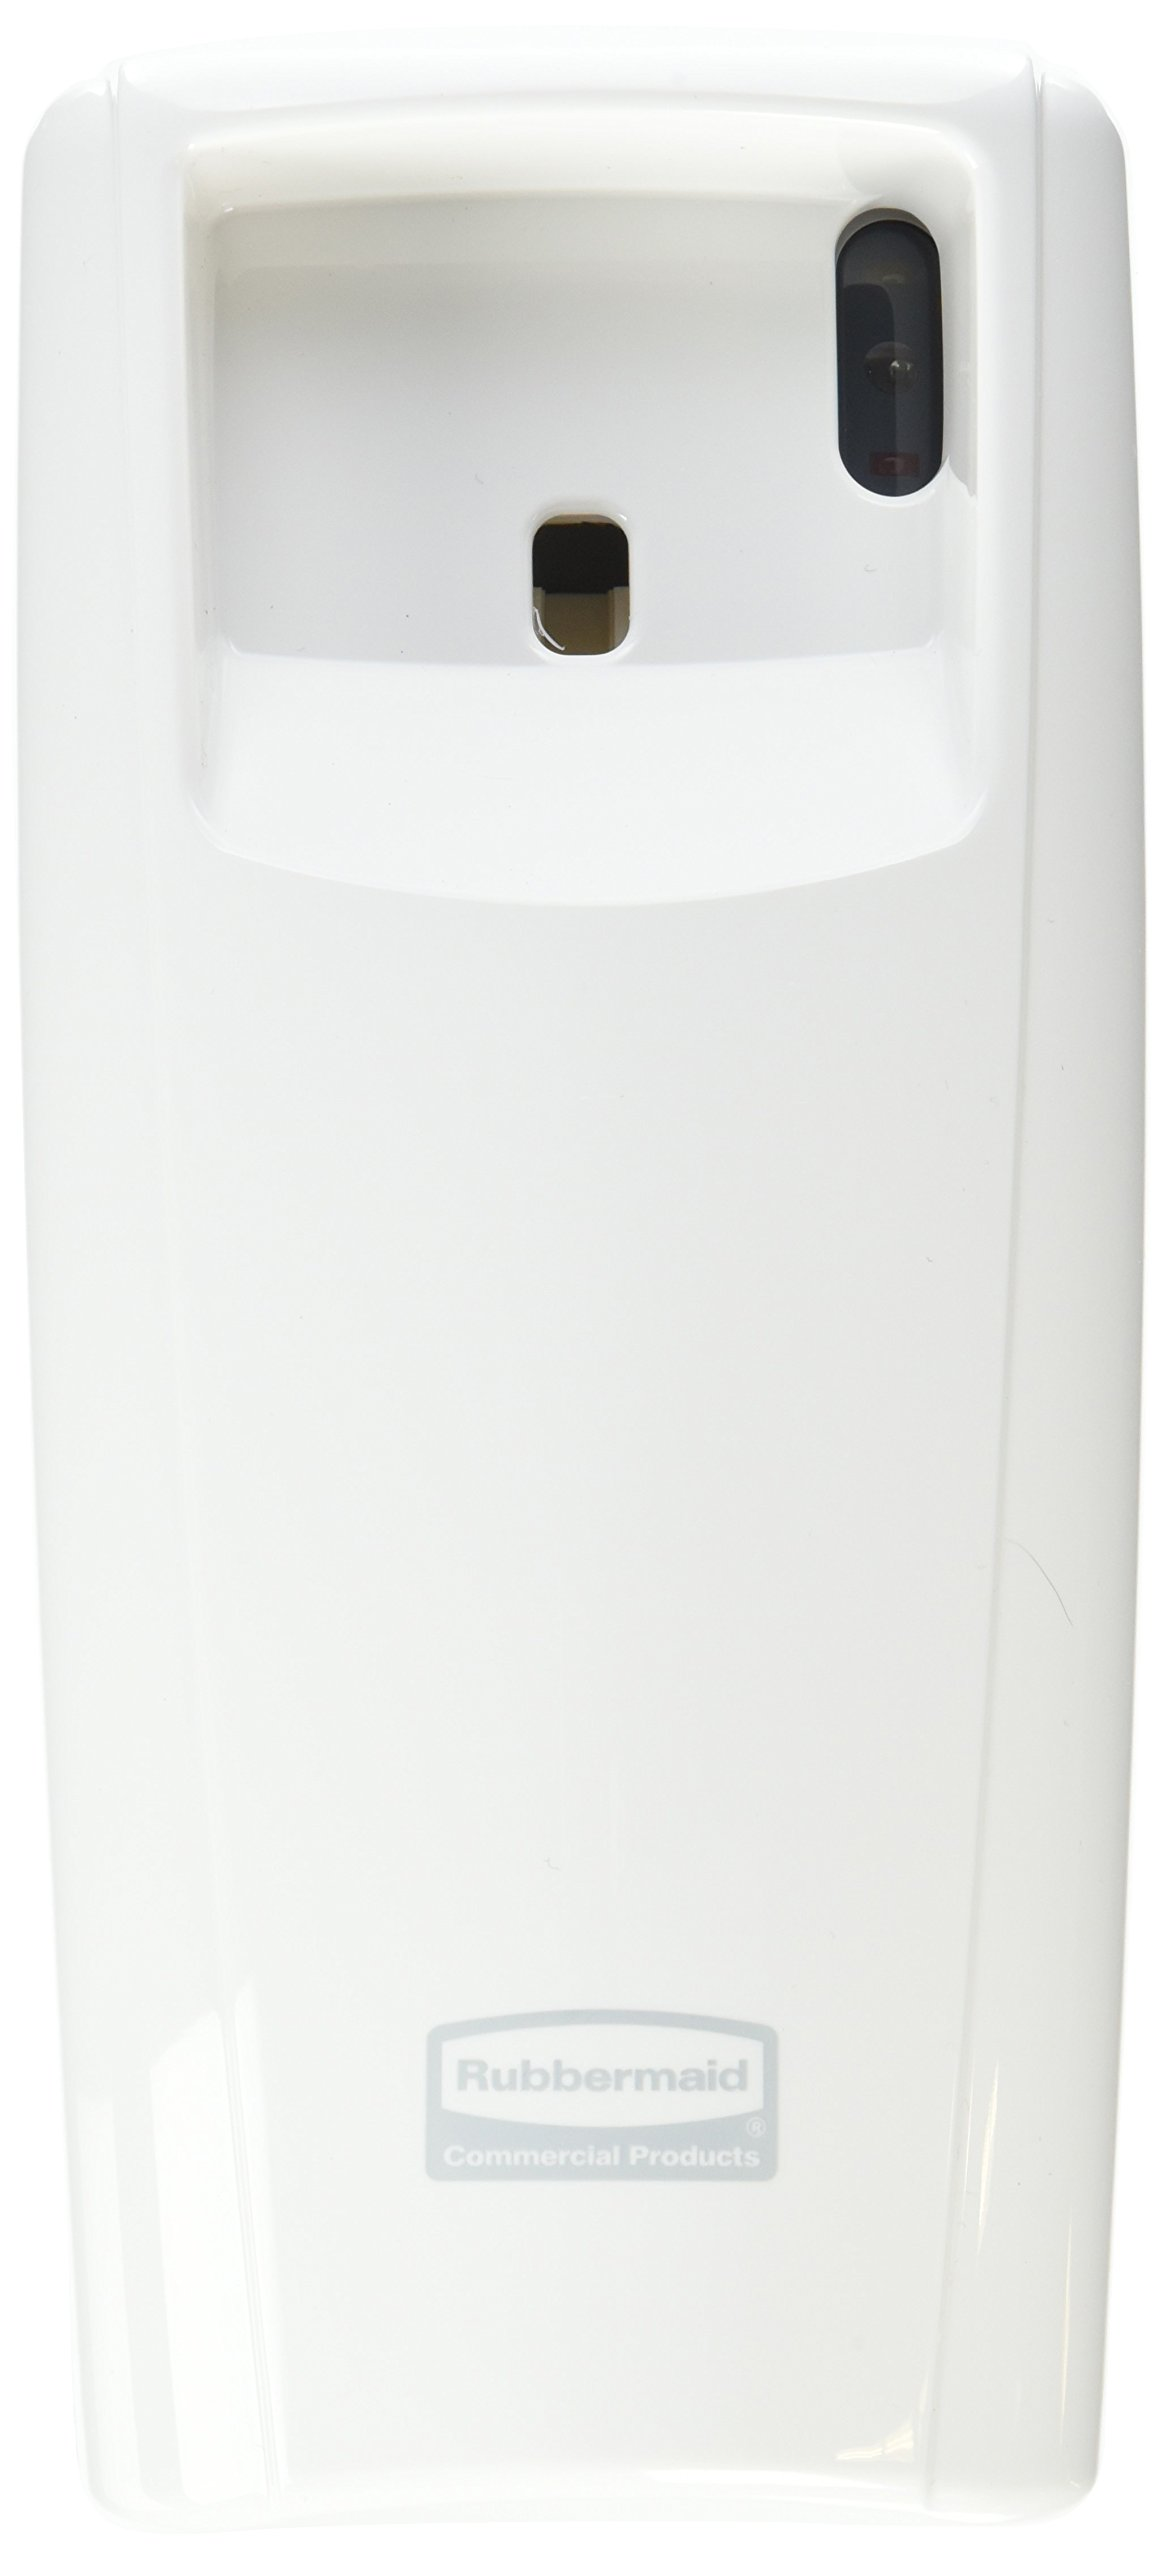 Rubbermaid Commercial Products 1793538 Standard Odor-Control Aerosol Dispenser with LED Display, White